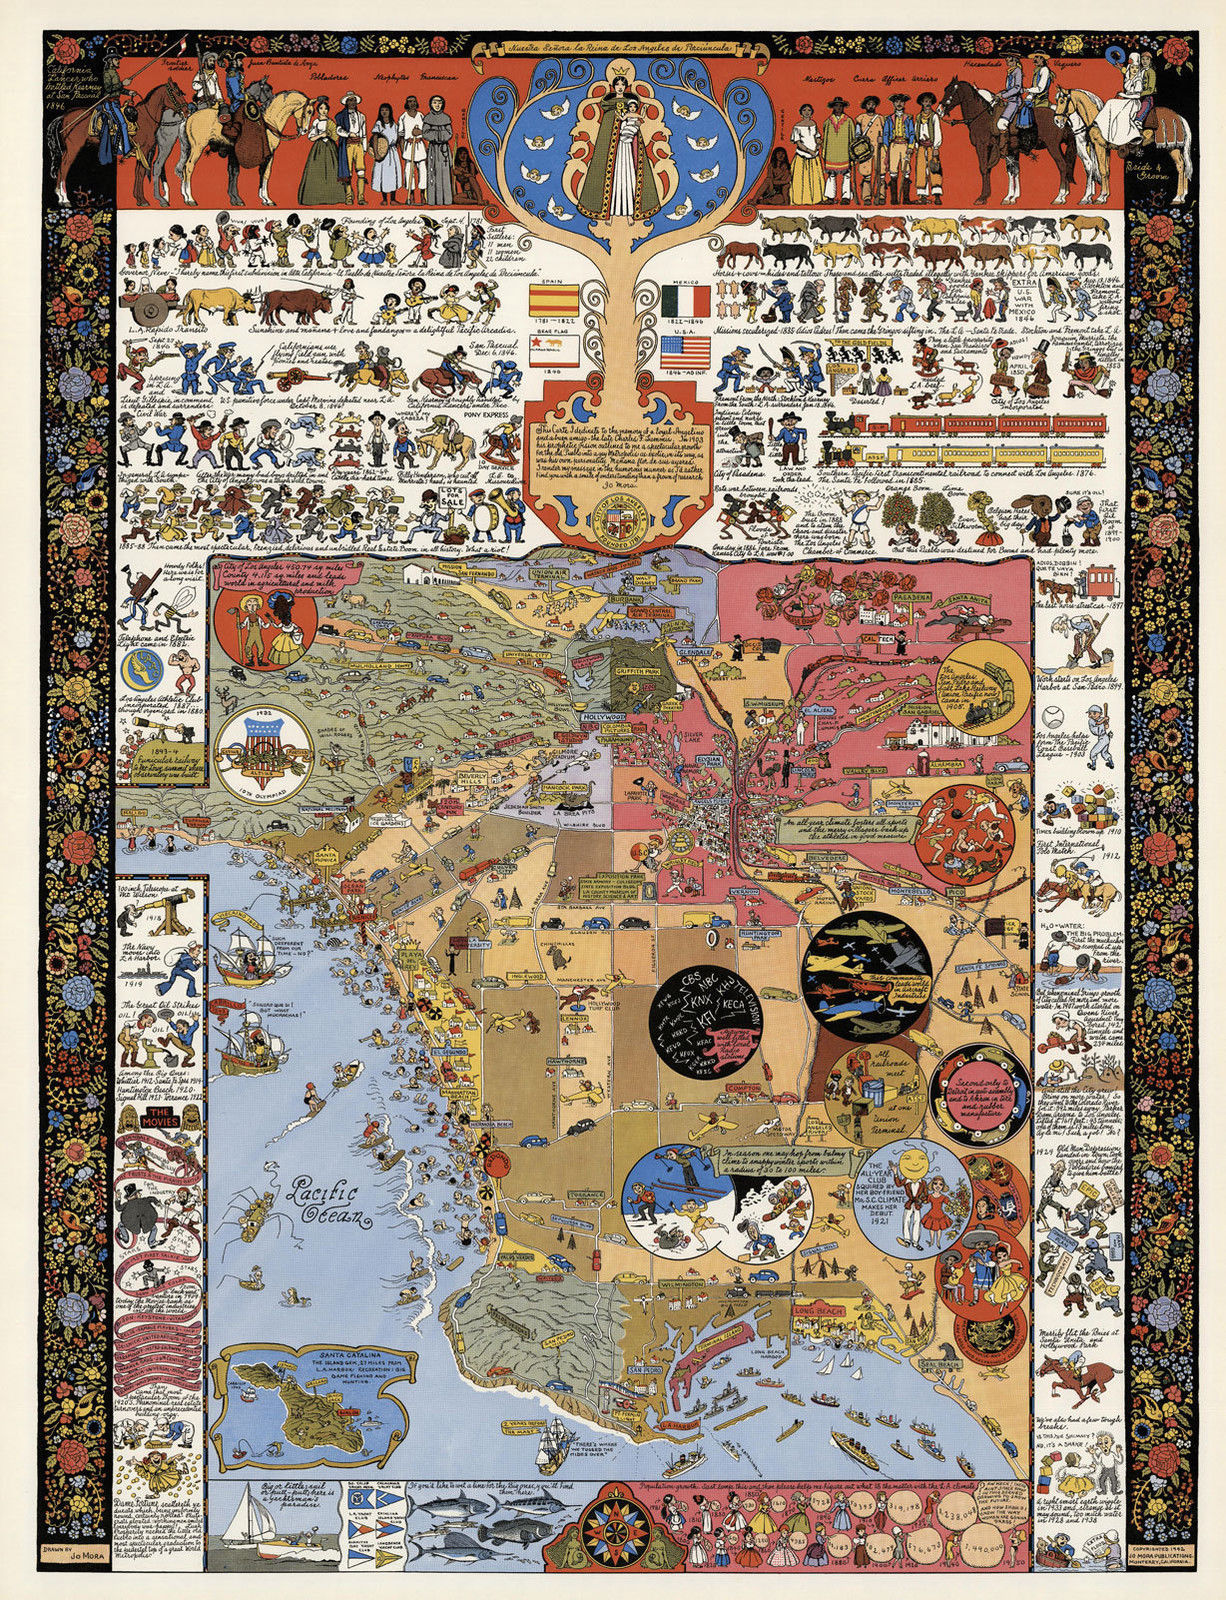 Los Angeles LA Historical Recreational And Similar Items - Historical wall maps